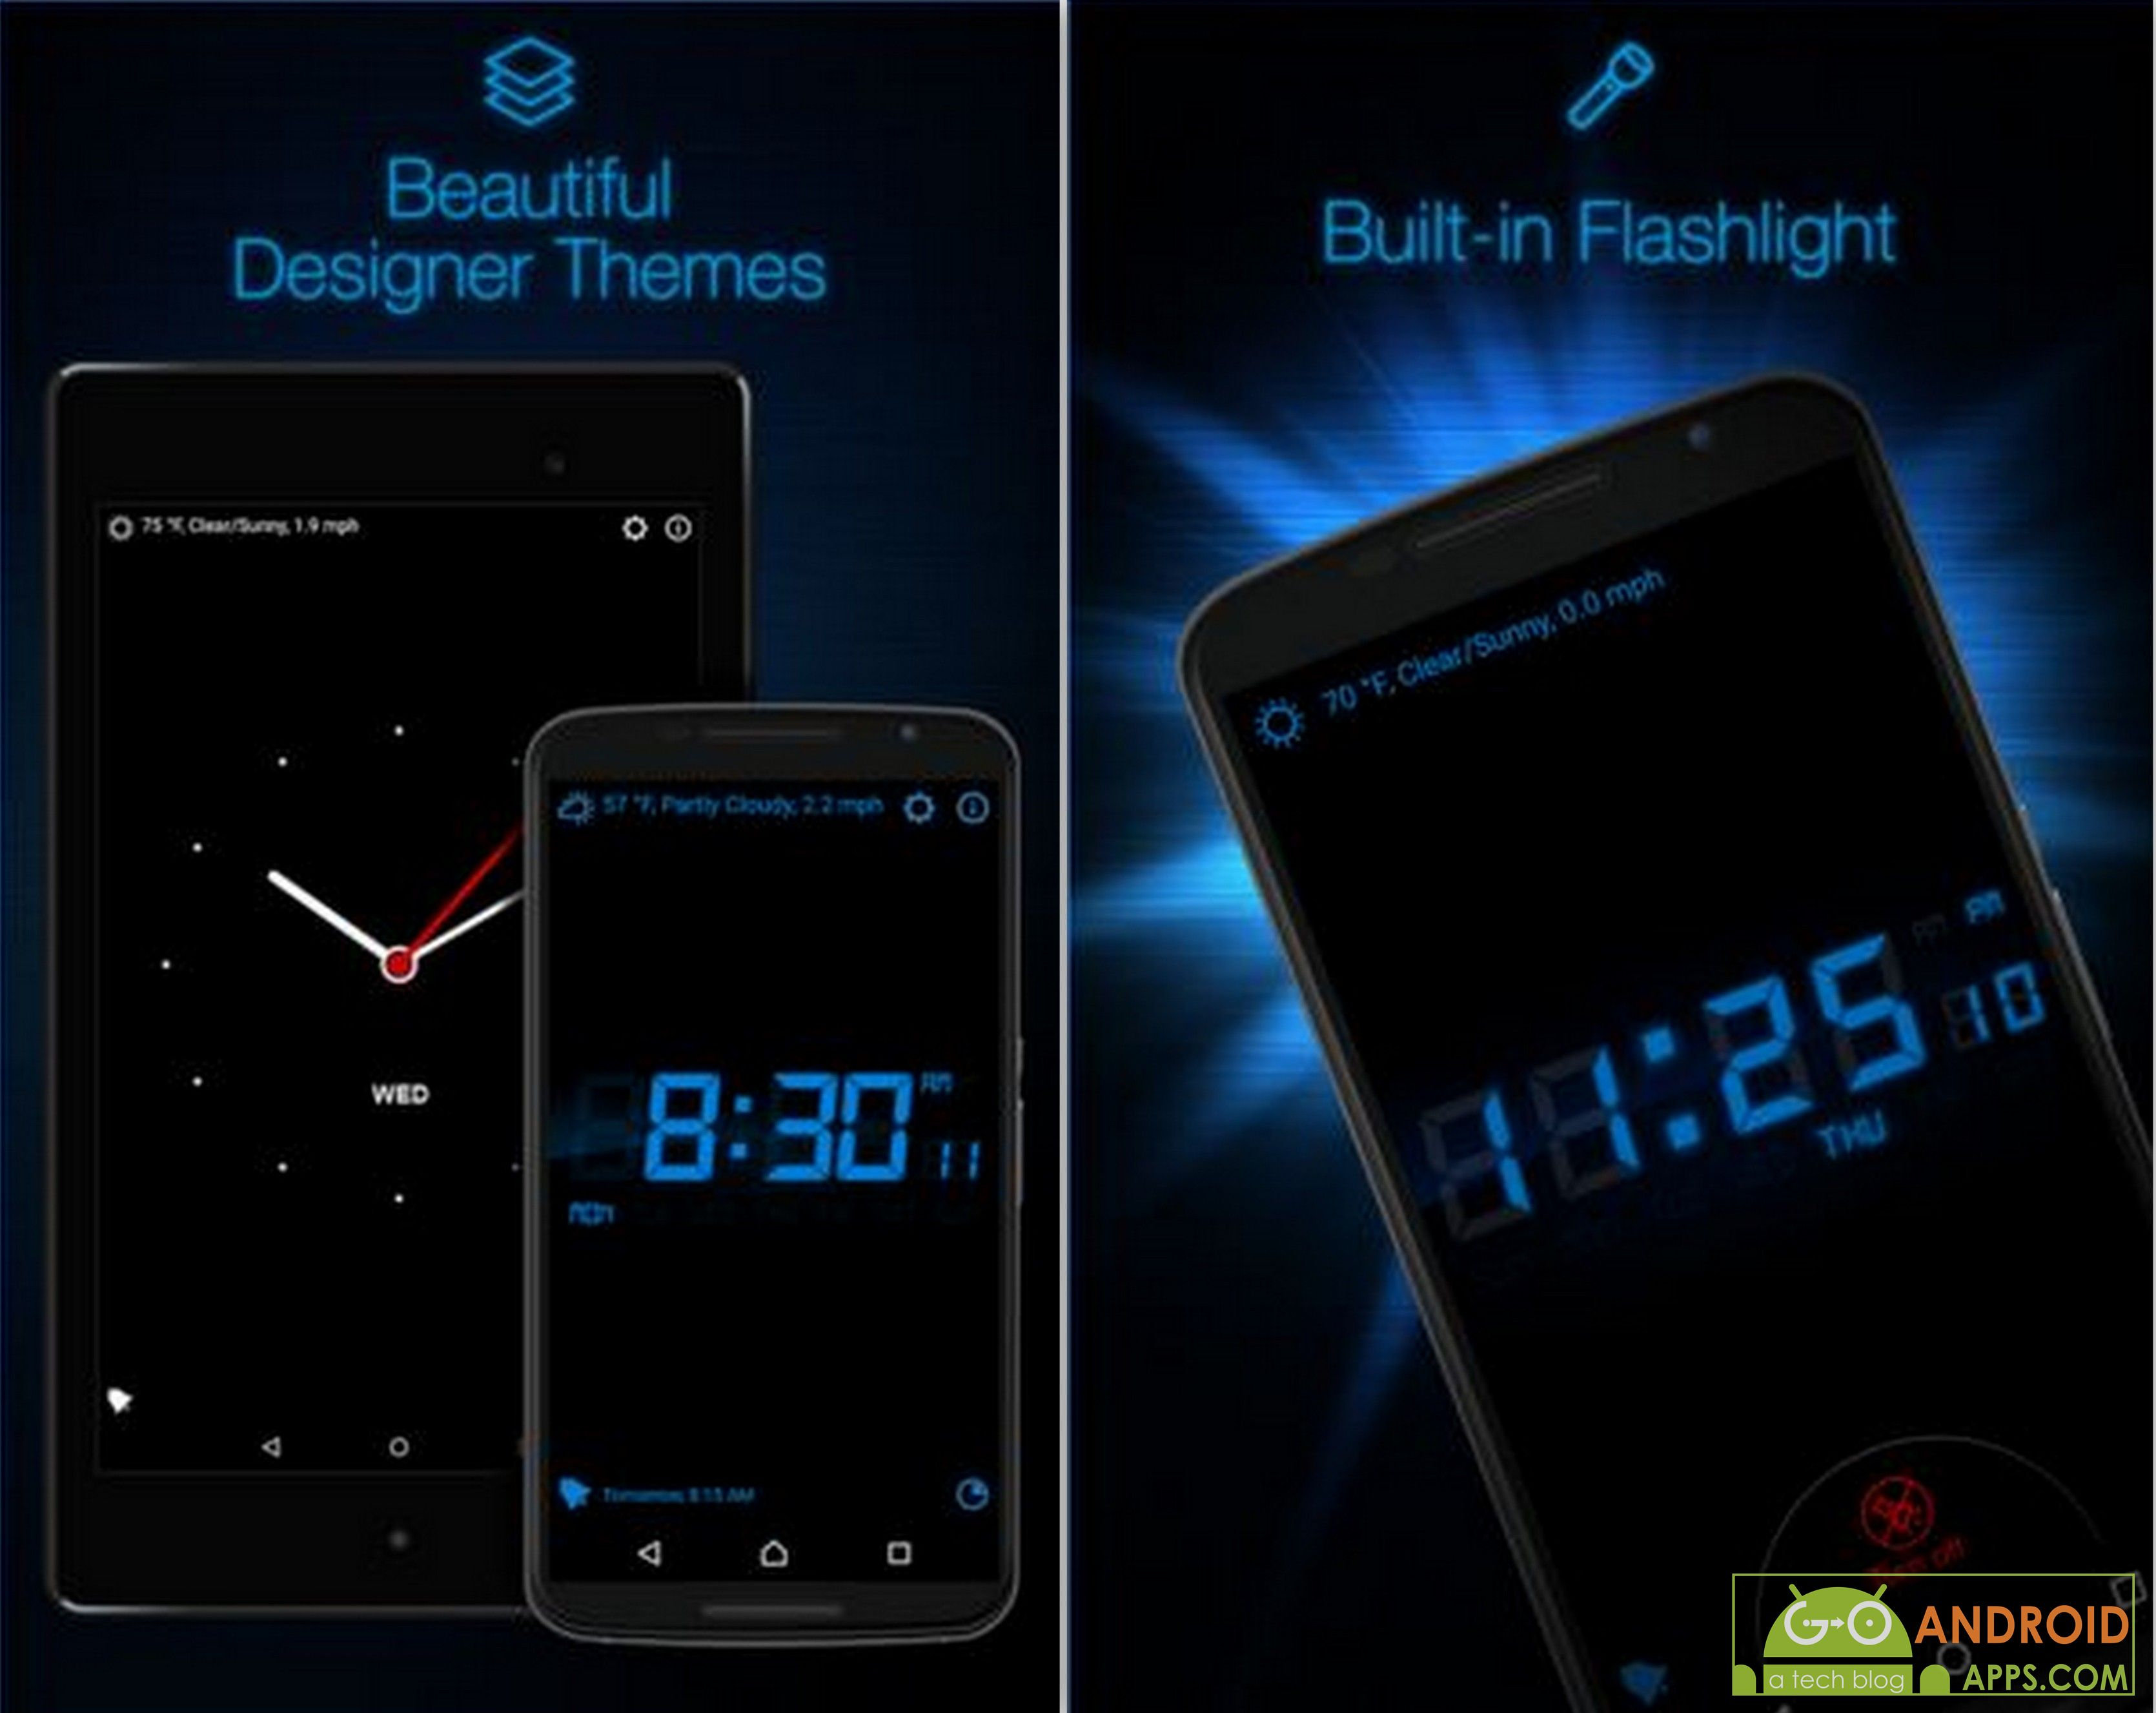 Phone Where Is The Alarm Clock On My Android Phone best alarm clock apps for android 2016 go use two stylish styles which are available keep track of weather and temperature details too download this app today my fr